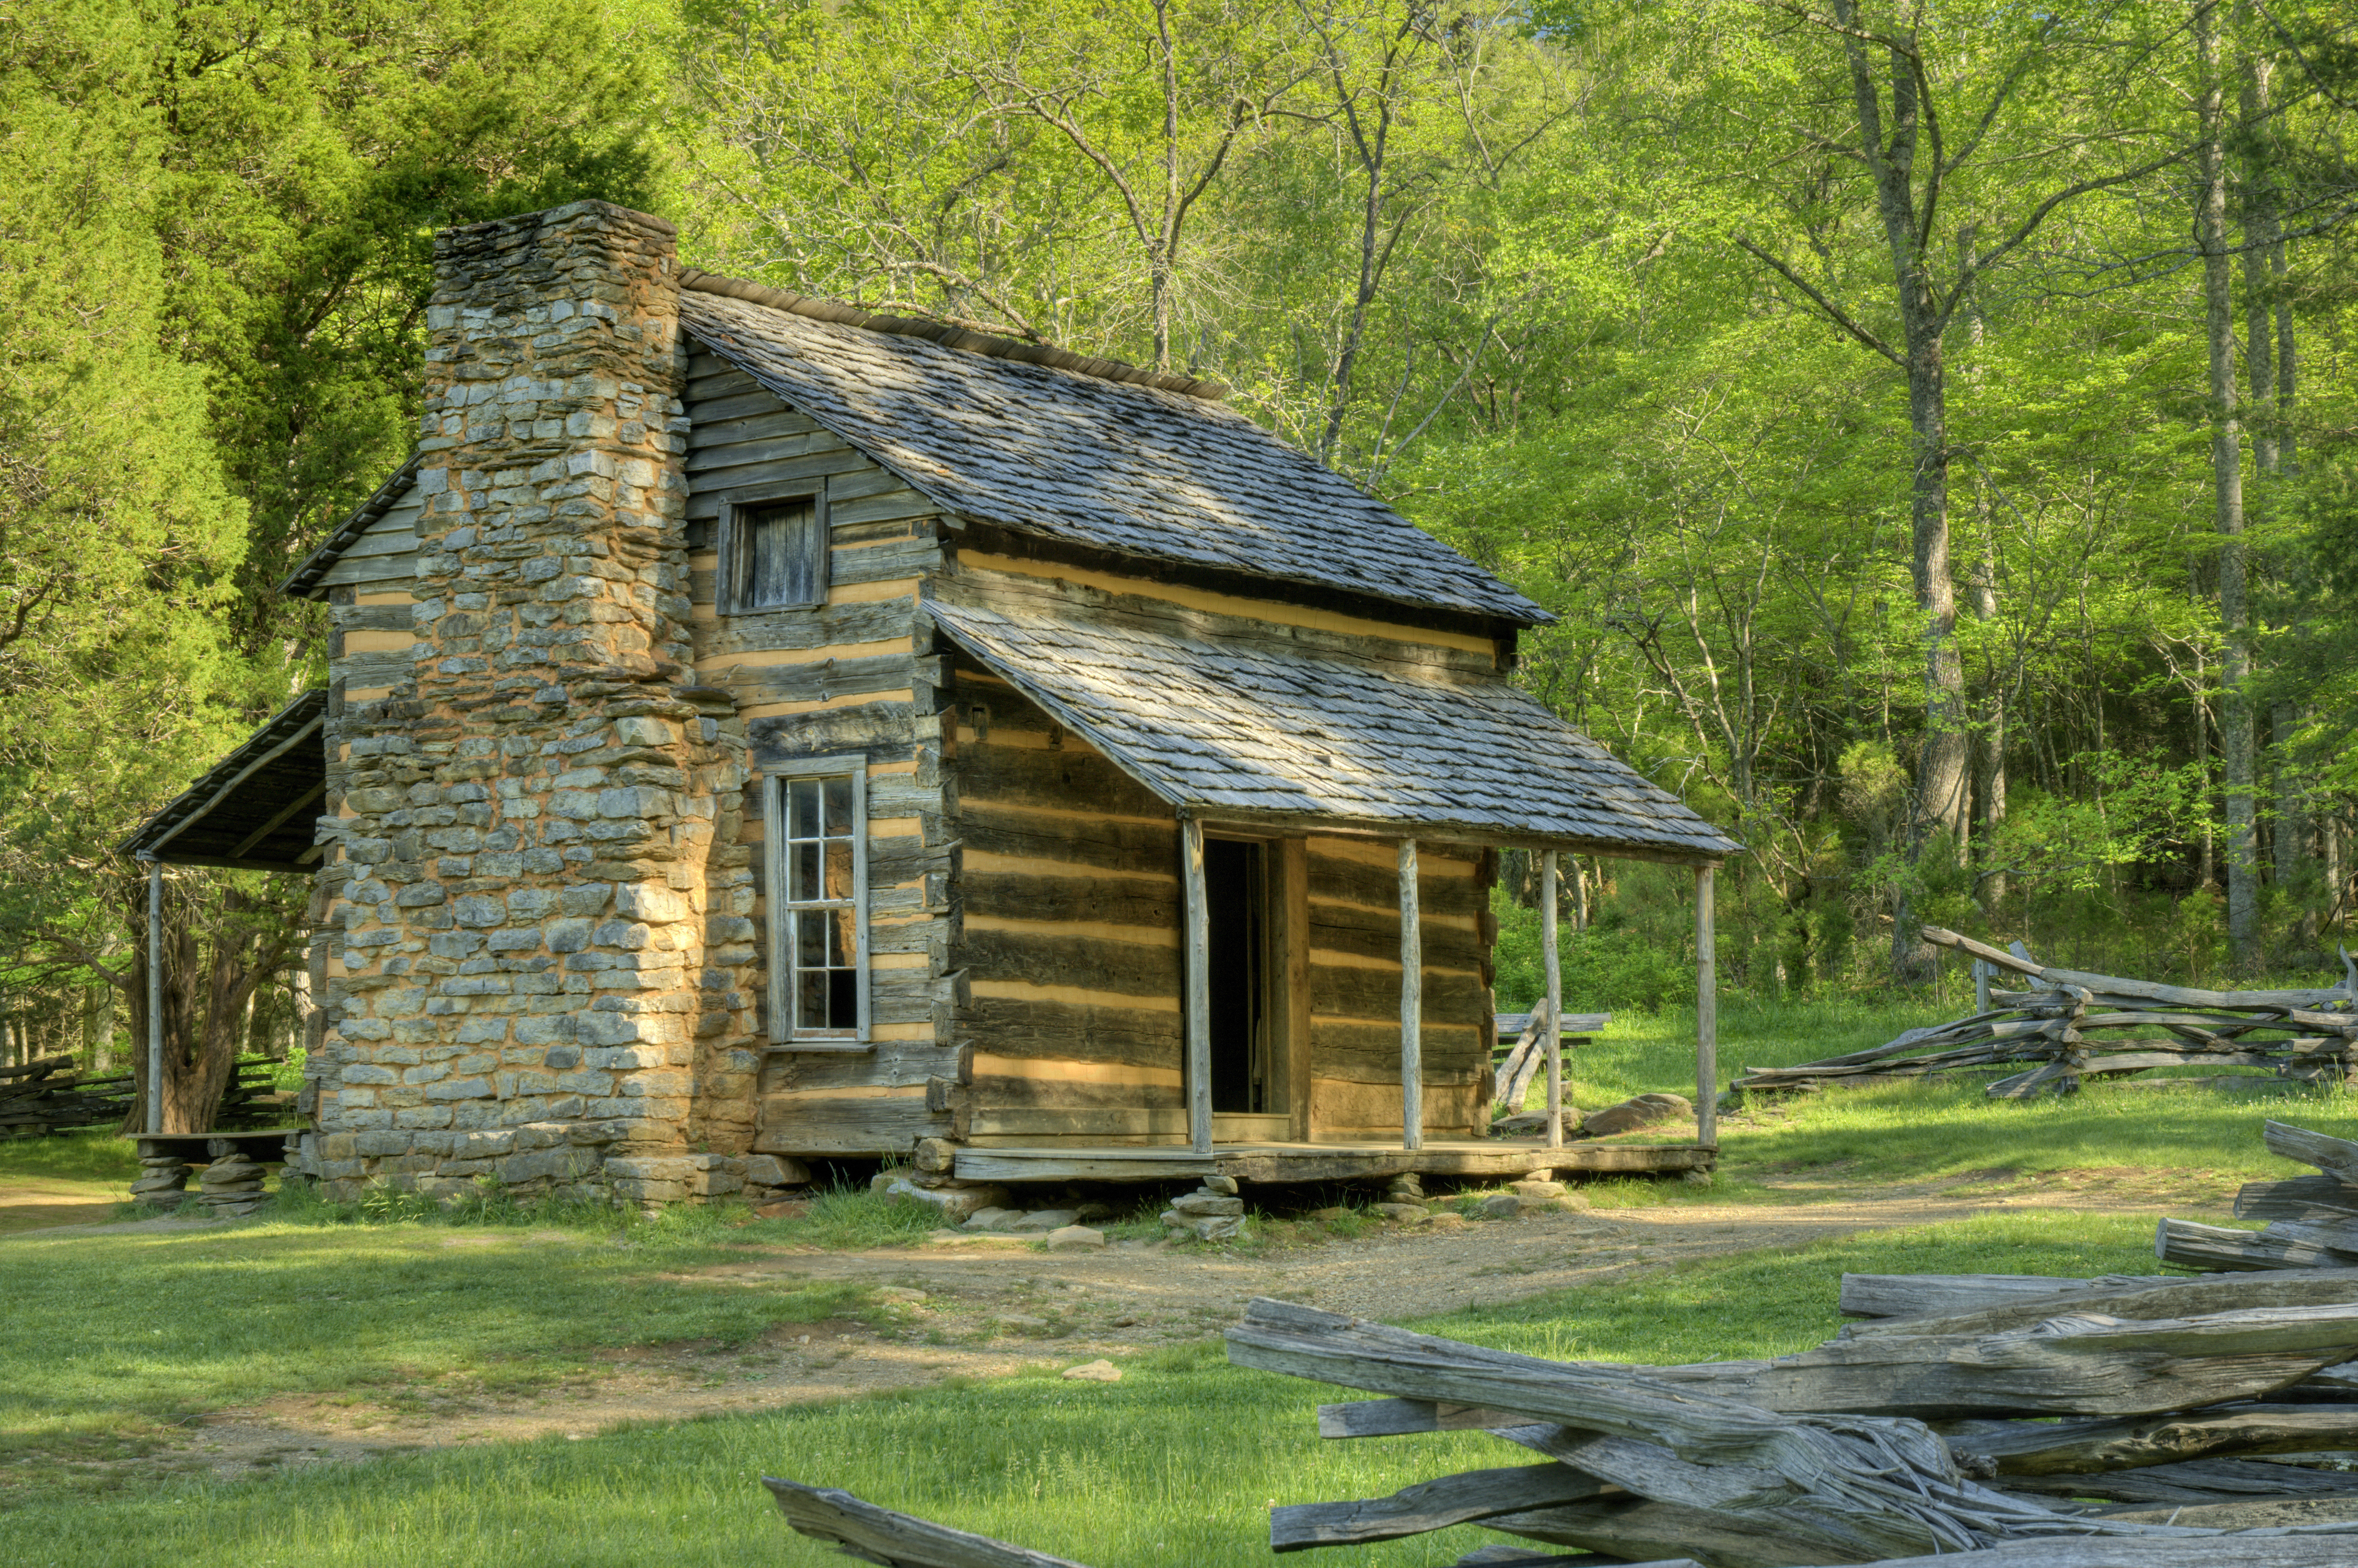 John Oliver's Cabin in Great Smoky Mountains National Park, Tennessee, USA